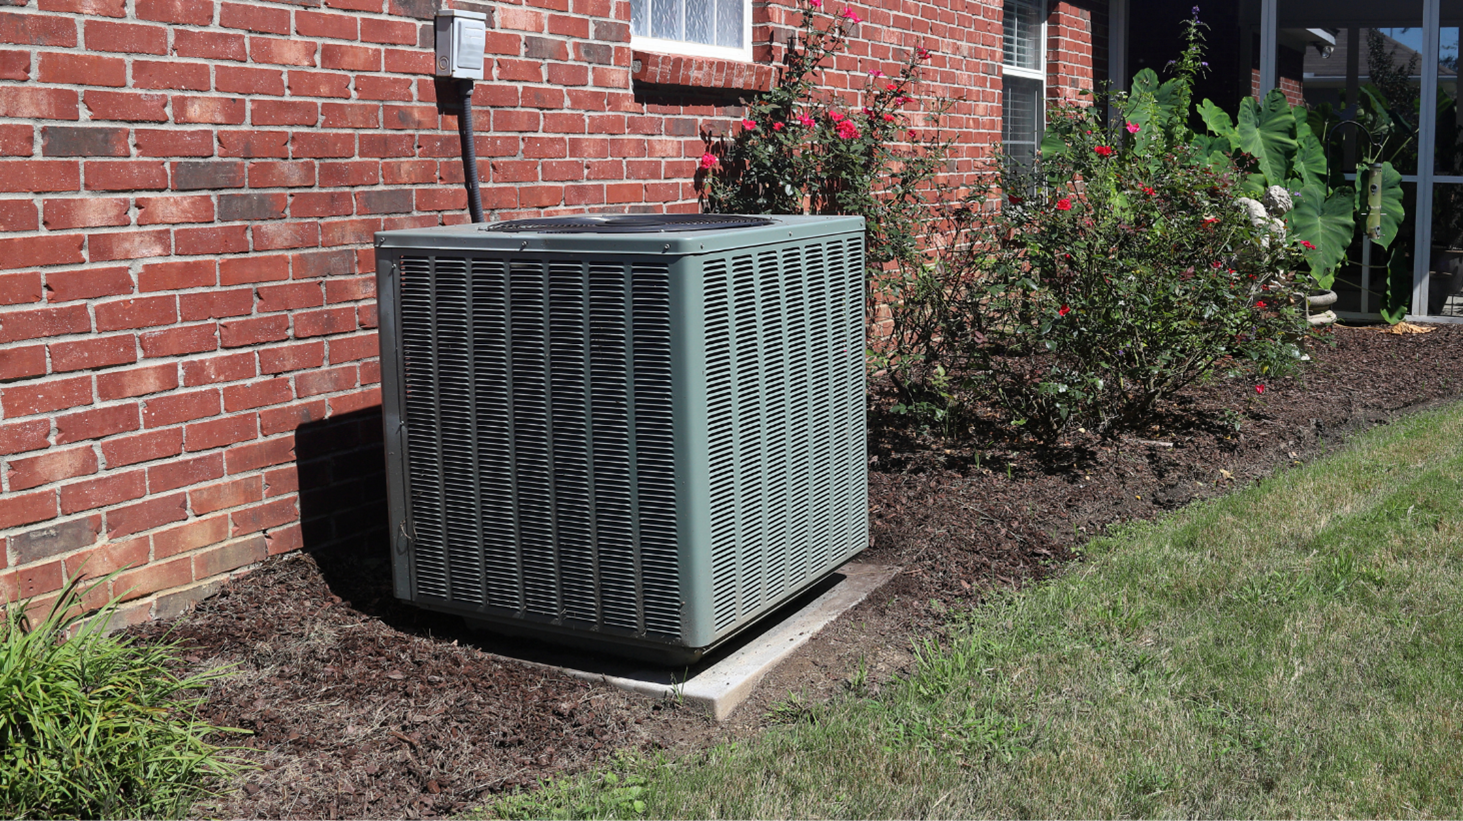 Tips From a Trusted HVAC Repair Company in Belton on Getting Your HVAC Unit Ready for Fall